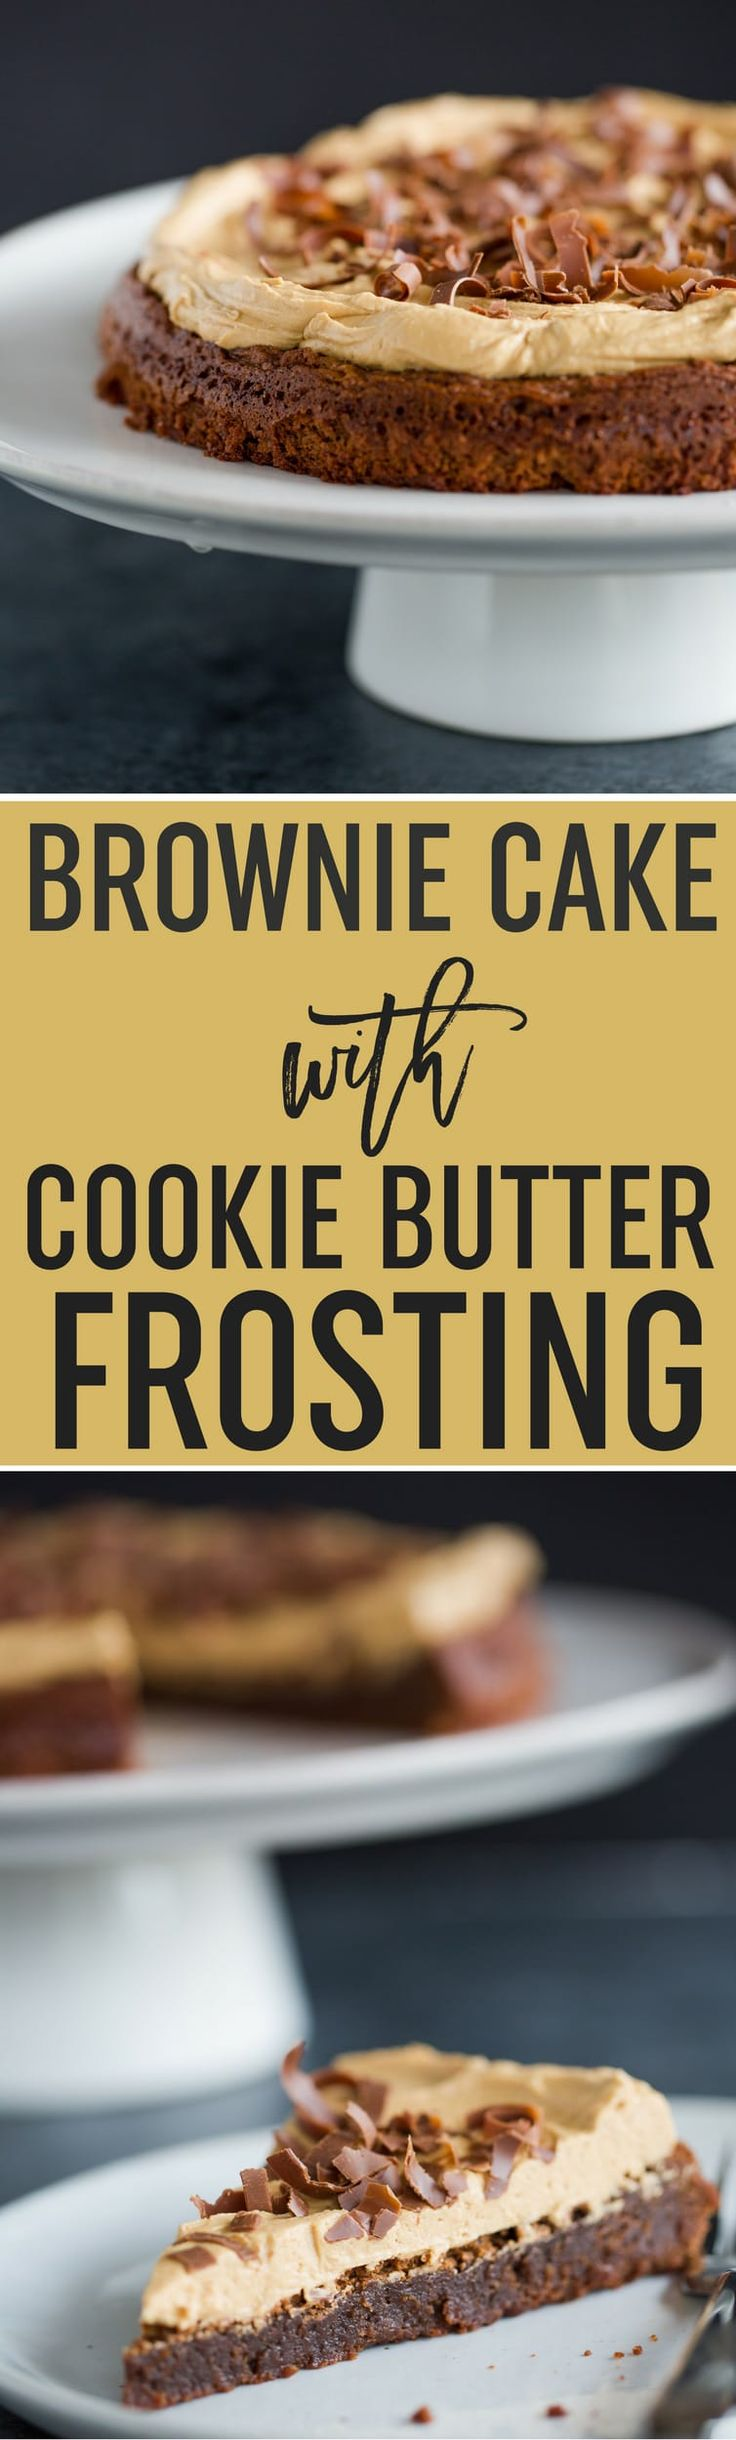 Brownie Cake with Cookie Butter Frosting | A dense and moist brownie is baked into a cake then topped with Biscoff frosting. A perfect combination of sweet, salty, and a touch of spice! An easy dessert perfect for company!  Brown Eyed Baker